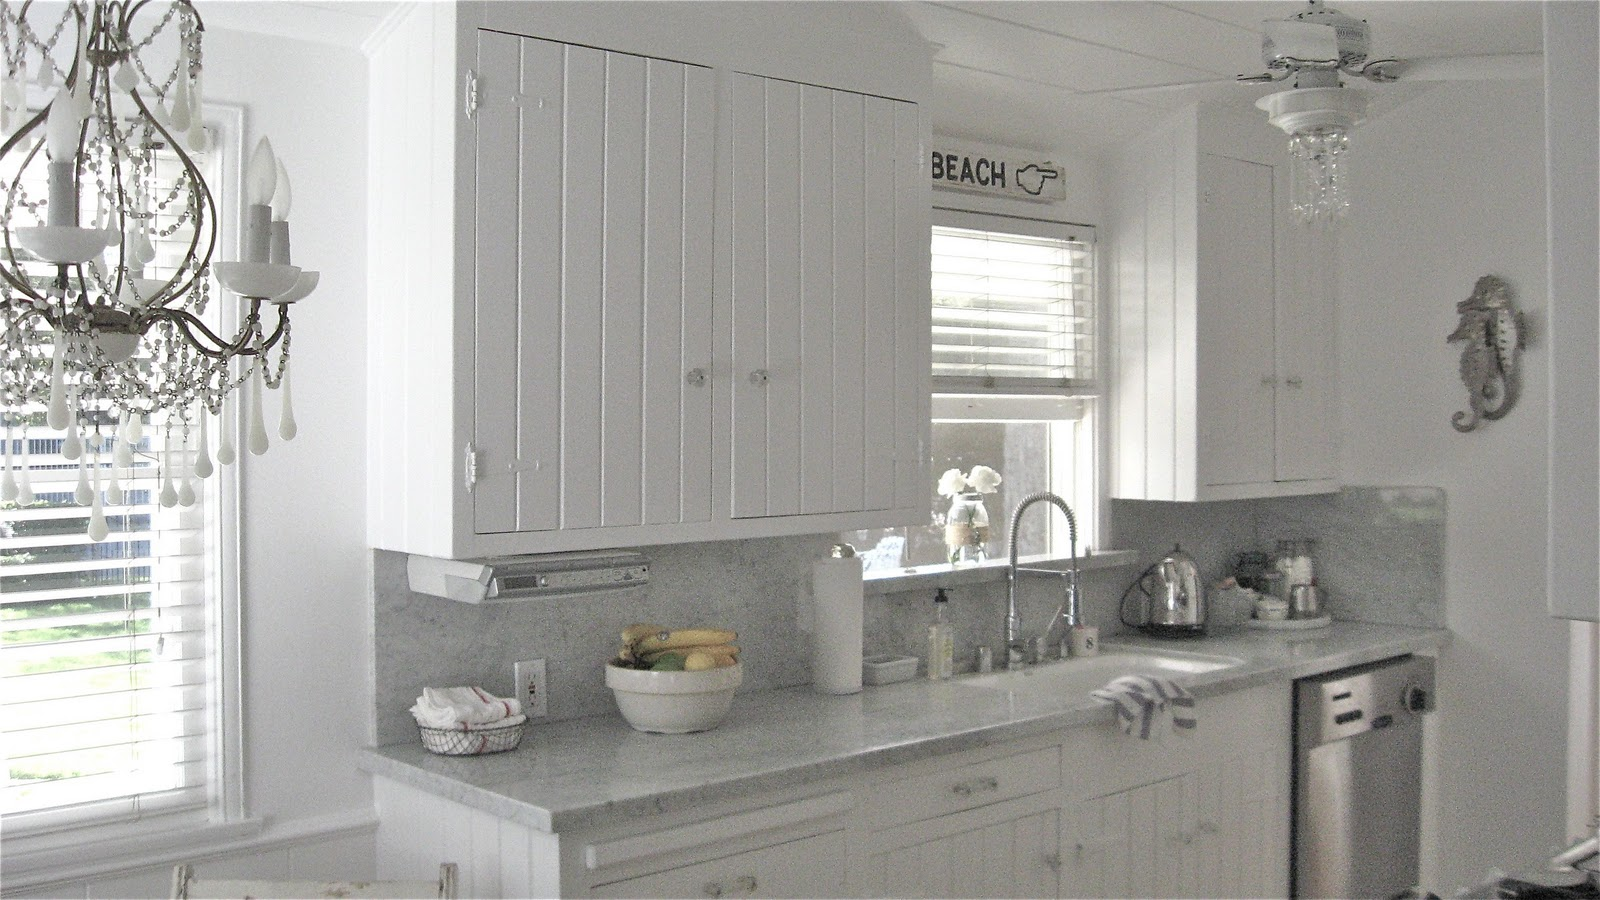 Beach cottage kitchen images. remodelaholic beach cottage remodel ...